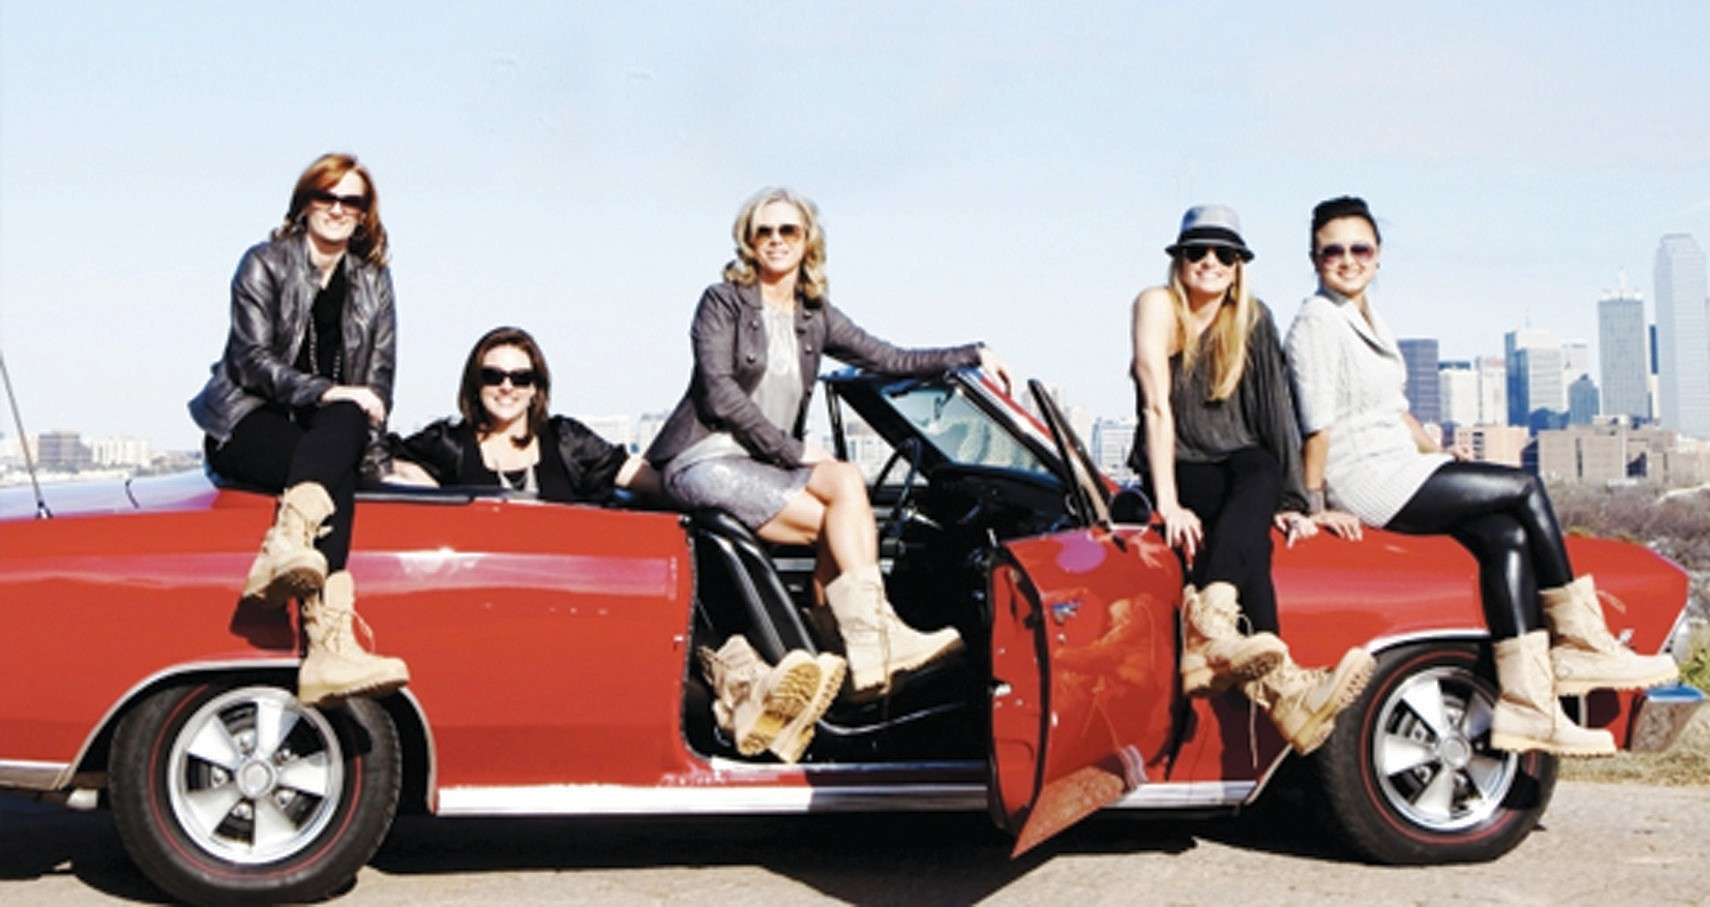 MEET THE BOOT GIRLS: (L to R) Ginger Giles, Leigh Ann Ranslem, Sherri Reuland, Heather Fordham, and Mariae Bui. The Boot Campaign was started in 2009 by five women from Texas known as the Original Boot Girls, and began as a fun photo op and turned into a national movement funding more than $2 million into the military community each year. Proceeds from retail sales and events, donations and corporate sponsorships allow the Boot Campaign to further their mission. As exceptional stewards of these funds, these ladies are proud to maintain complete financial transparency.